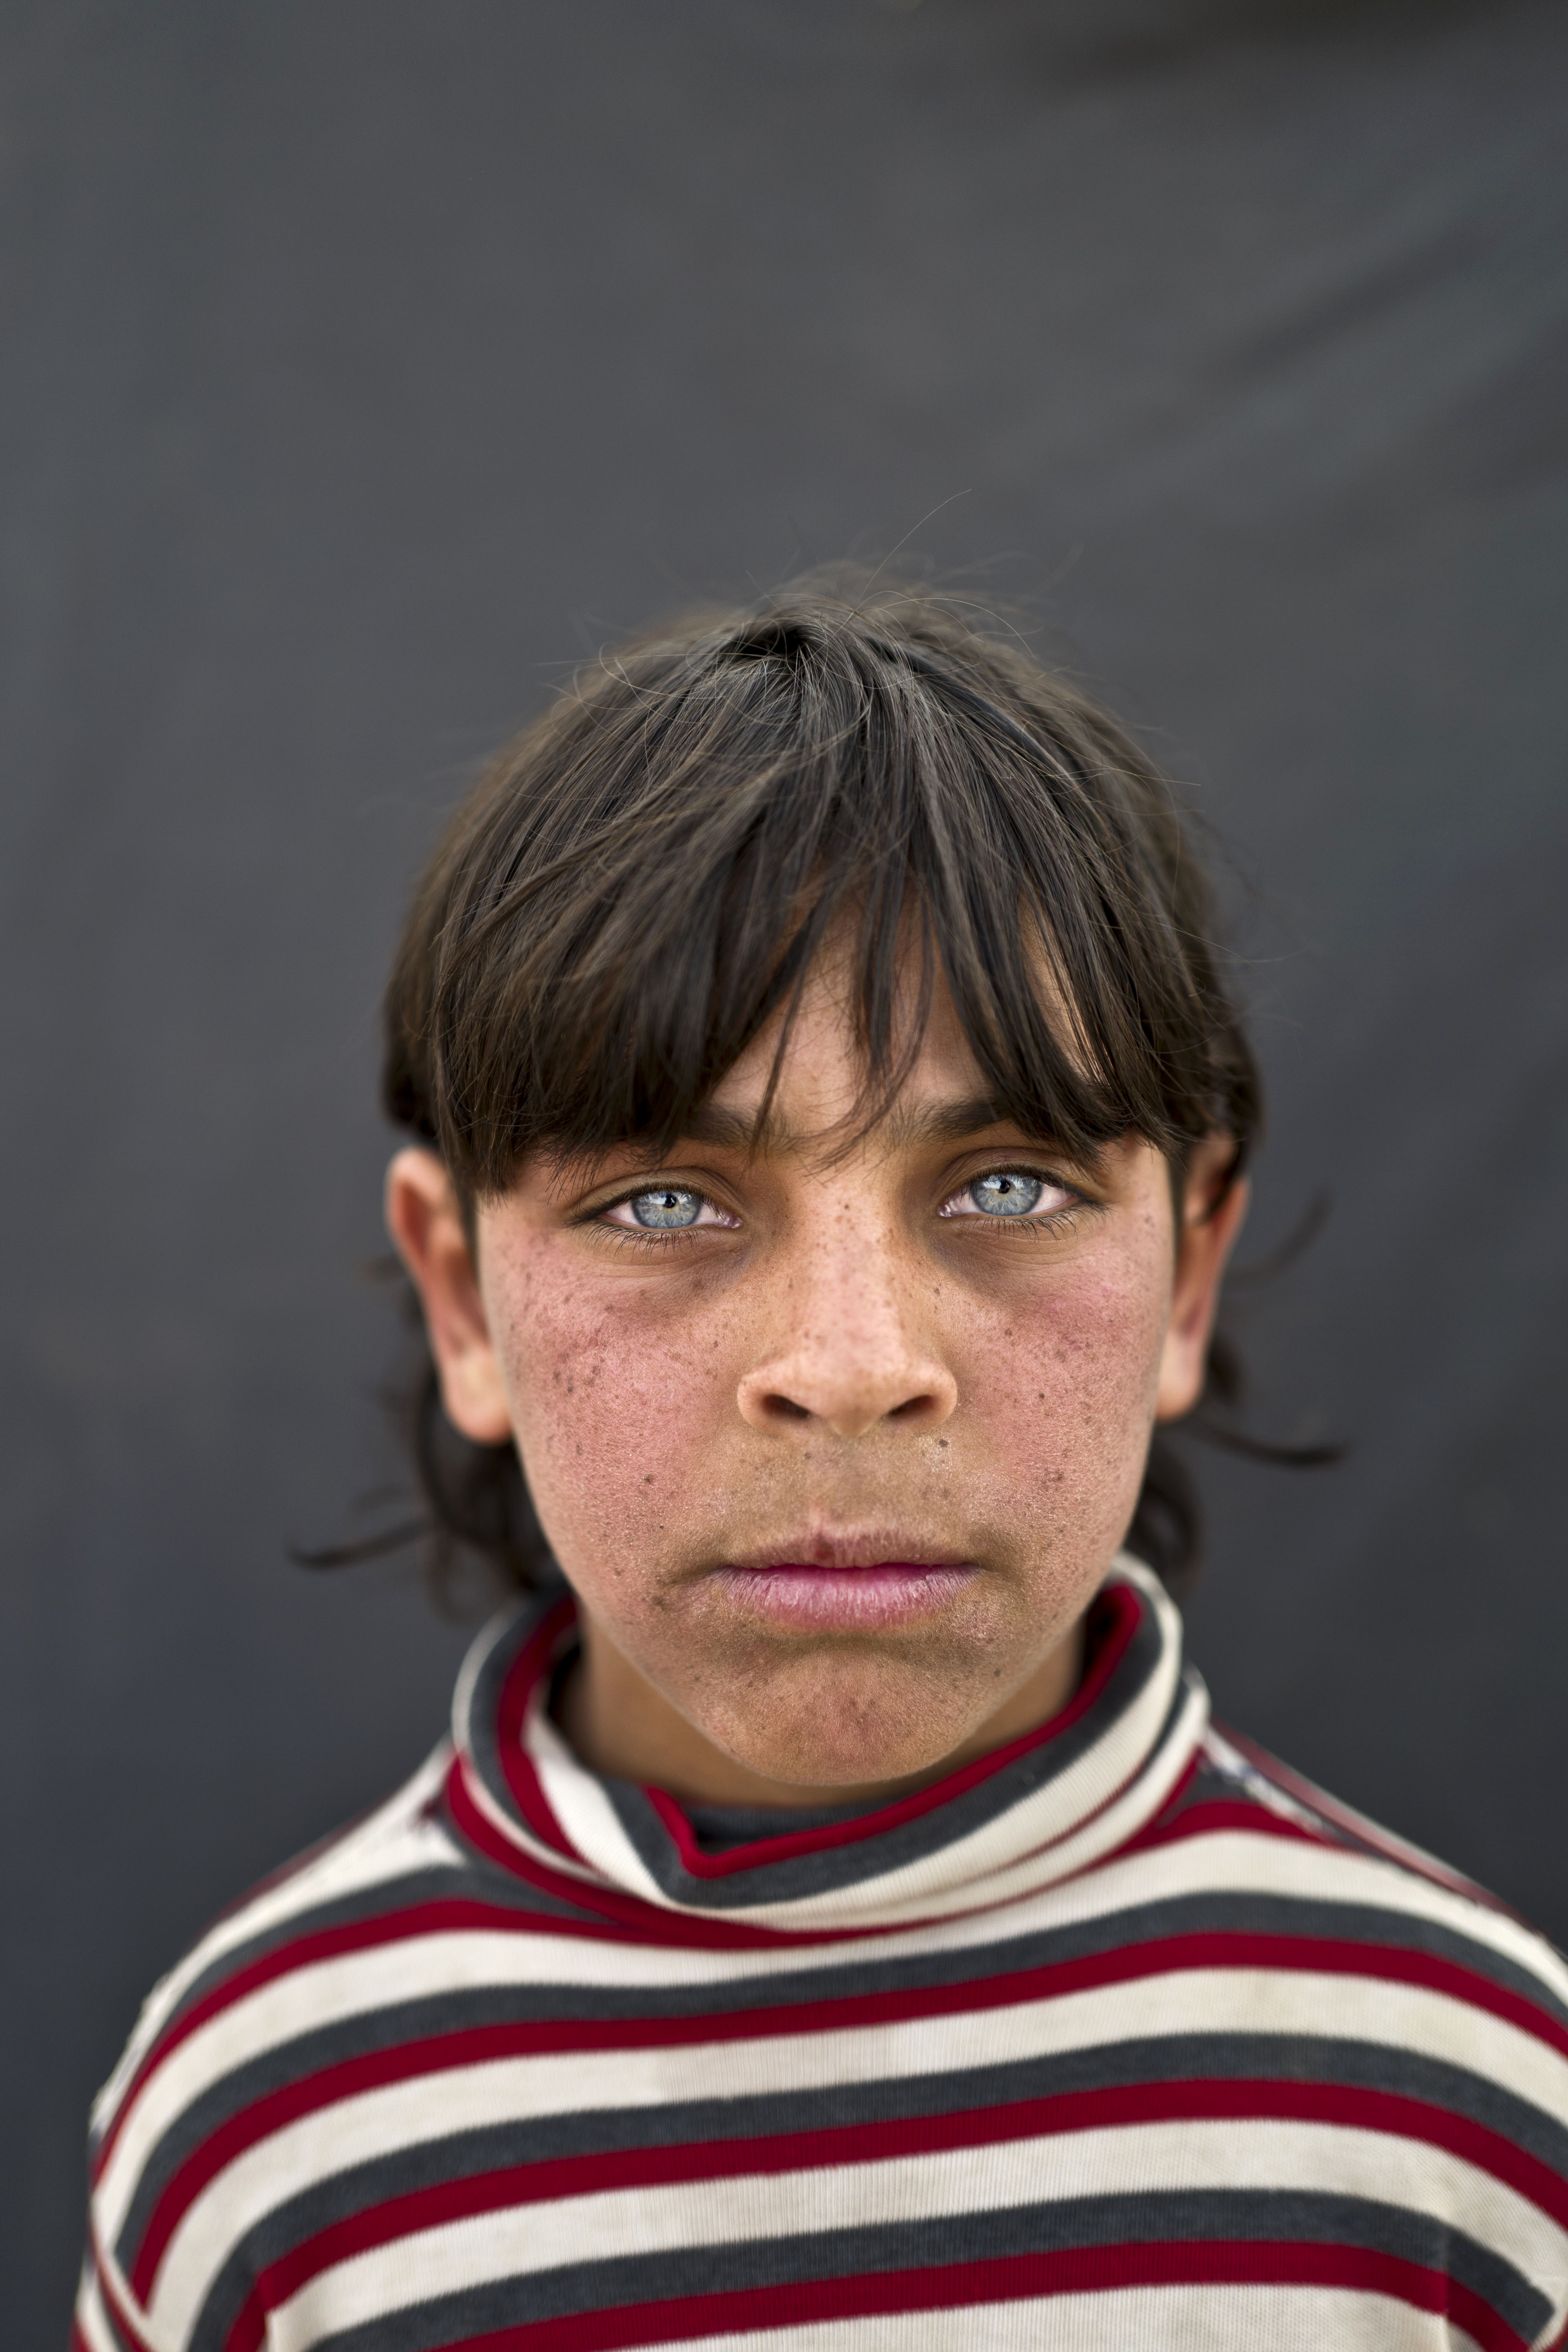 """<strong>Rakan Raslan</strong>, 11, from Hama. """"I used to go to the school back in Hama,"""" Raslan said. """"I used to have friends there. Our home was destroyed in the war and we had to flee to Jordan."""" Rakan said that without an education, his future is in doubt. """"The best I can become is a driver,"""" he said."""